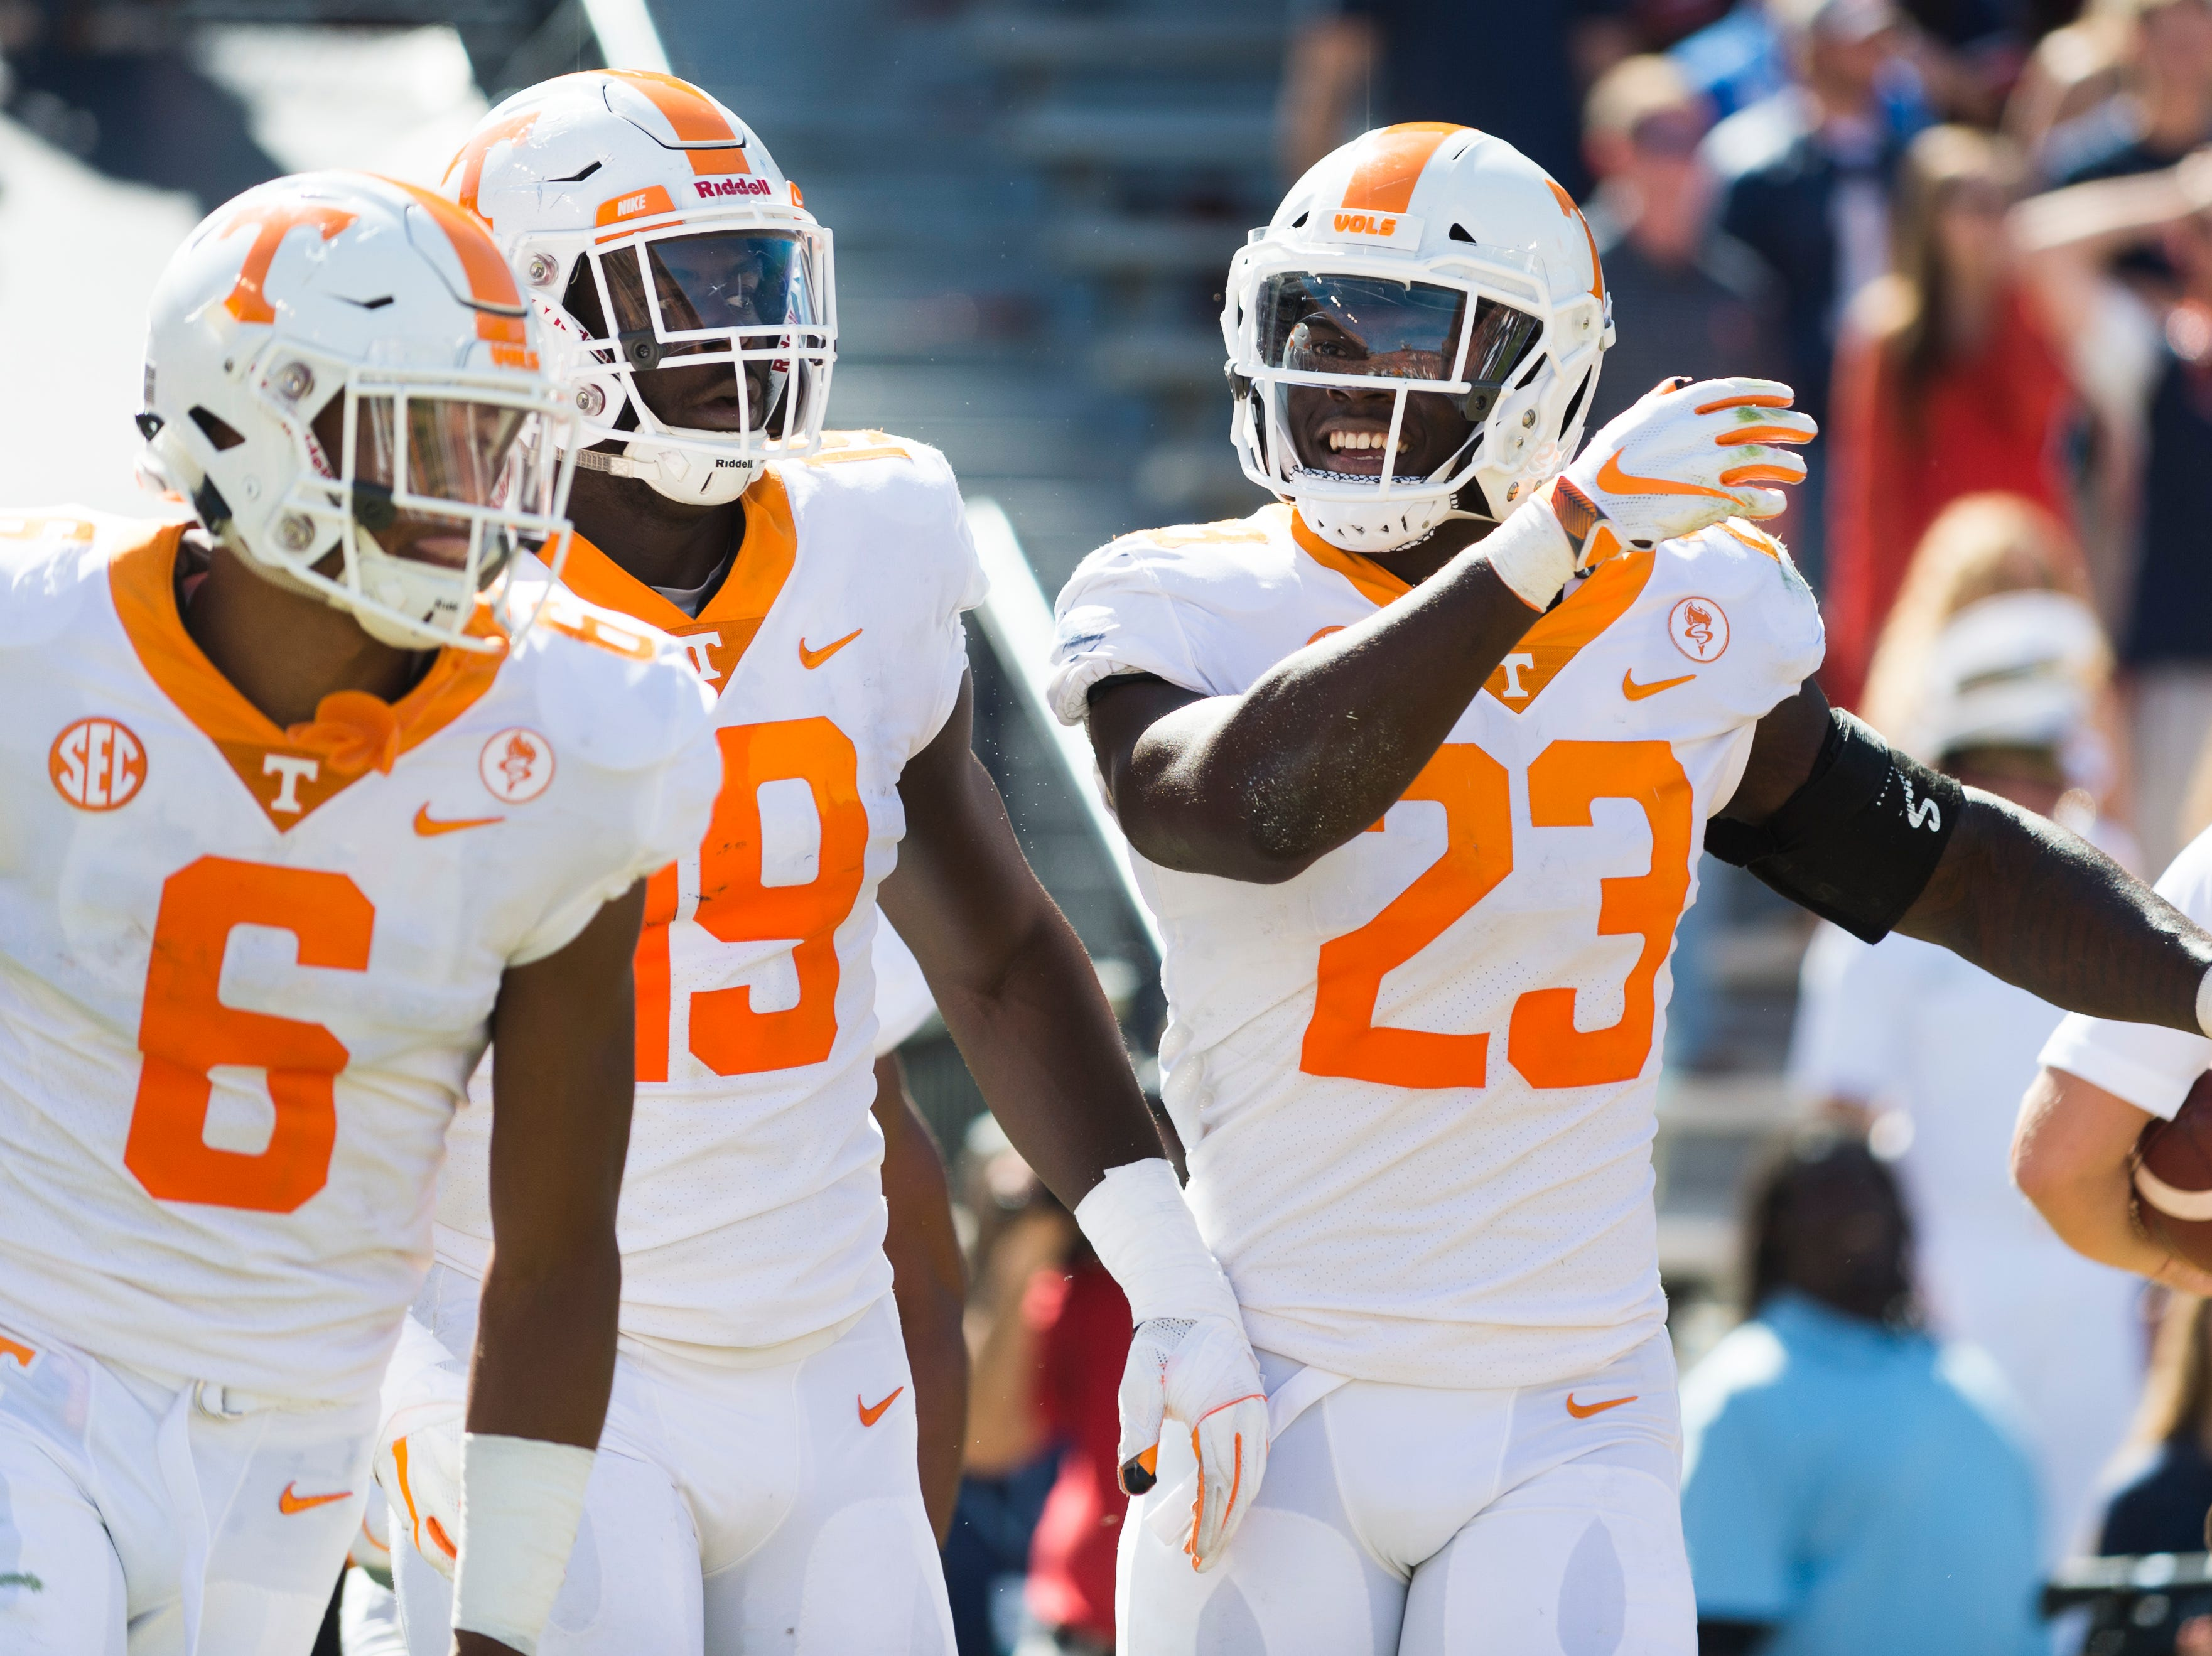 Tennessee defensive back/wide receiver Alontae Taylor (6), Tennessee linebacker Darrell Taylor (19) and Tennessee linebacker Will Ignont (23) celebrate a touchdown from a fumbled ball during a game between Tennessee and Auburn at Jordan-Hare Stadium in Auburn, Alabama on Saturday, October 13, 2018.